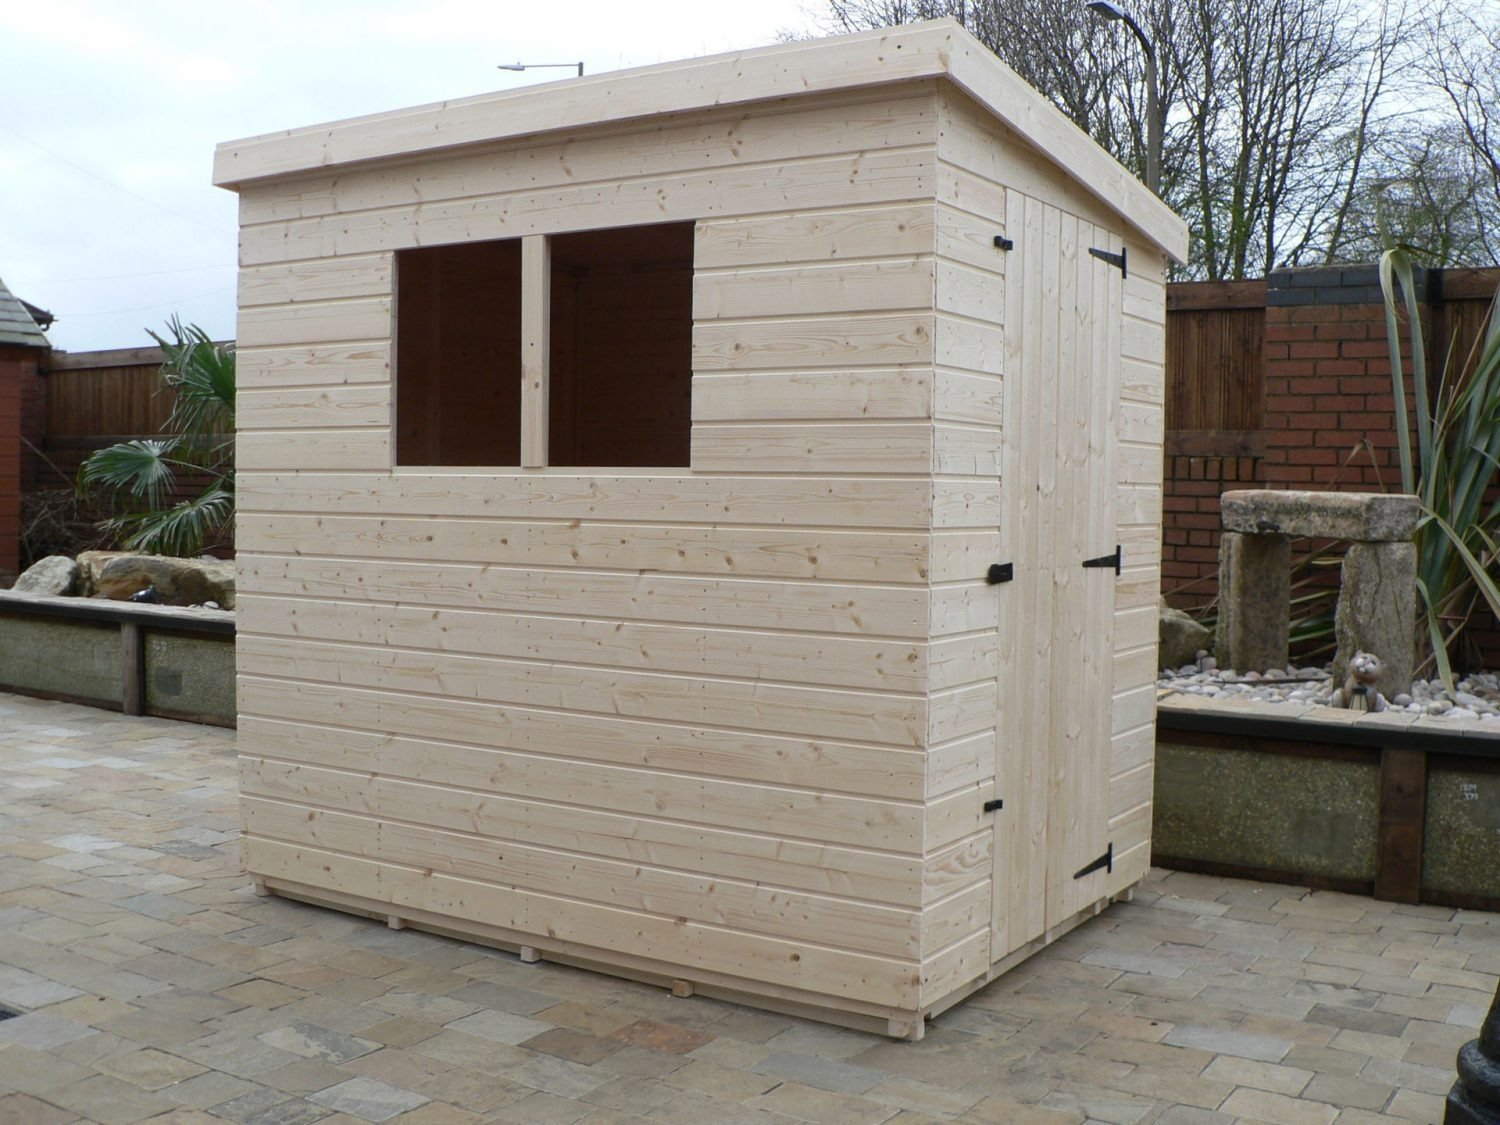 7' X 5' Pent Shed Full Size Windows